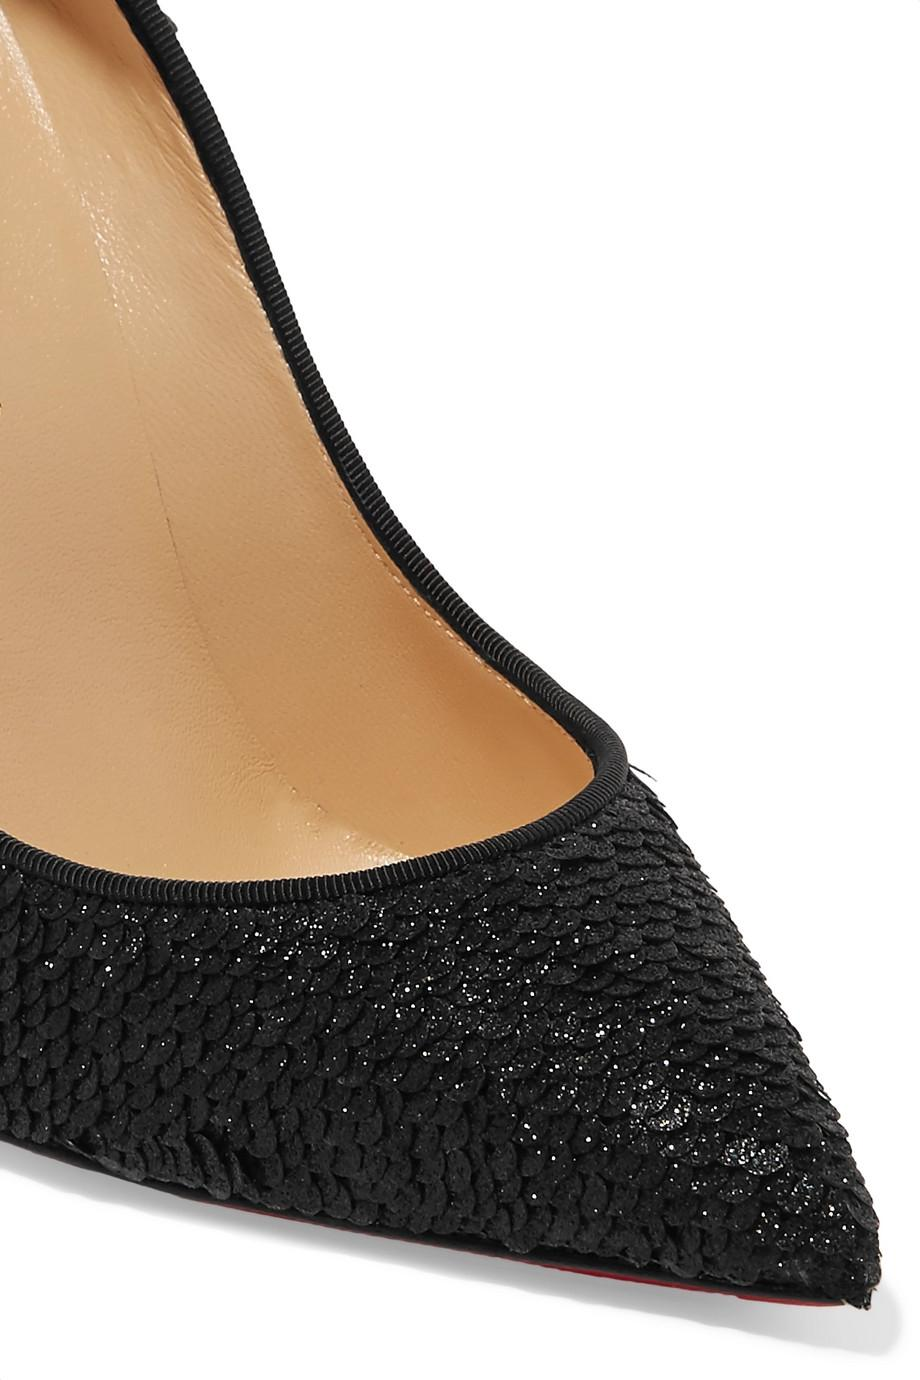 a3dbd5a9228 Christian Louboutin Black - Pigalle Follies Sequined Sequined ...